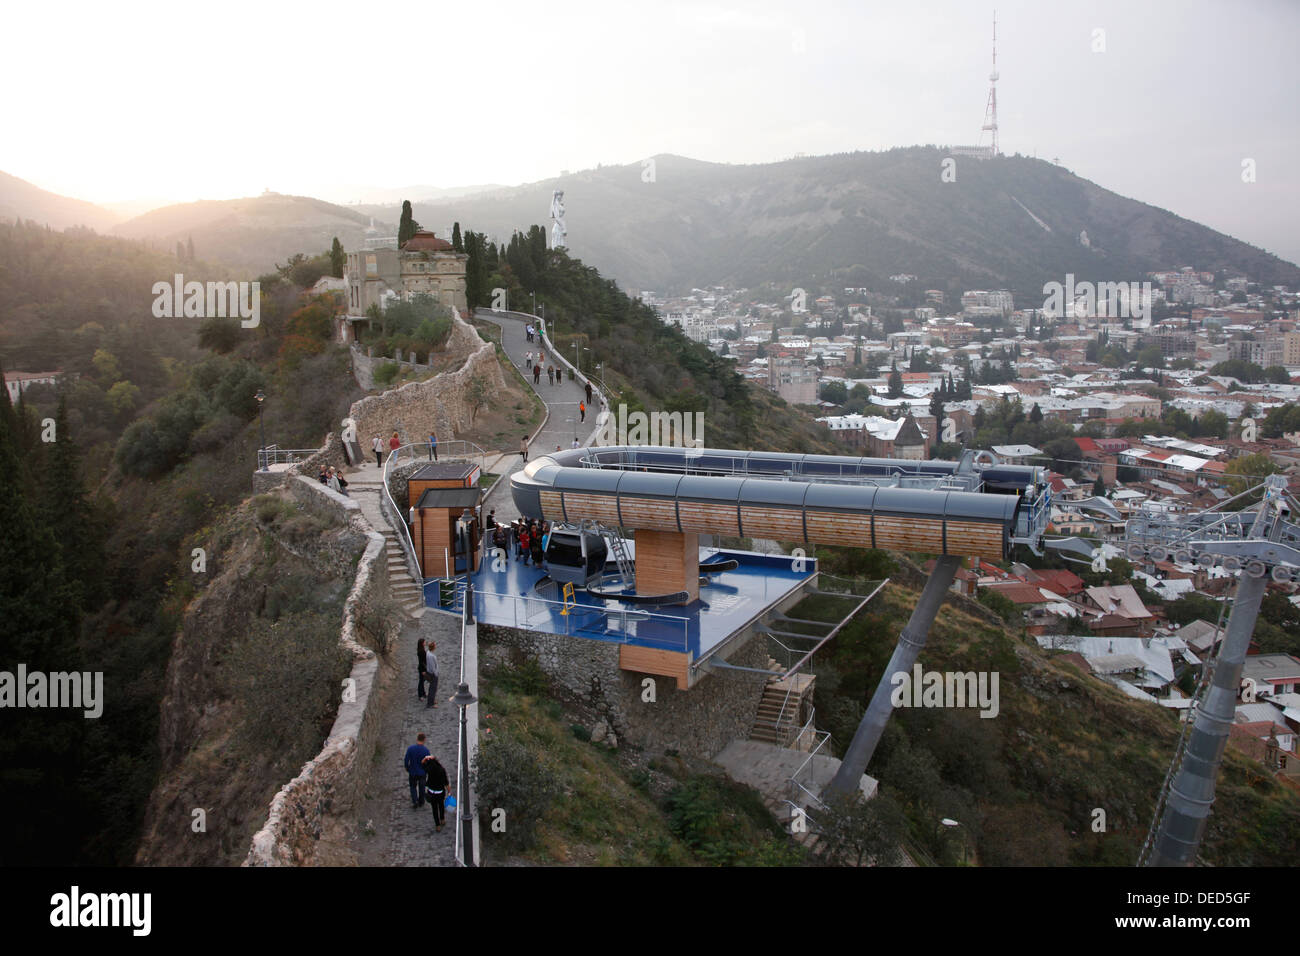 How To Buy A Car In Tbilisi Georgia: Tbilisi, Georgia, Cable Car Between The Rike Park And The